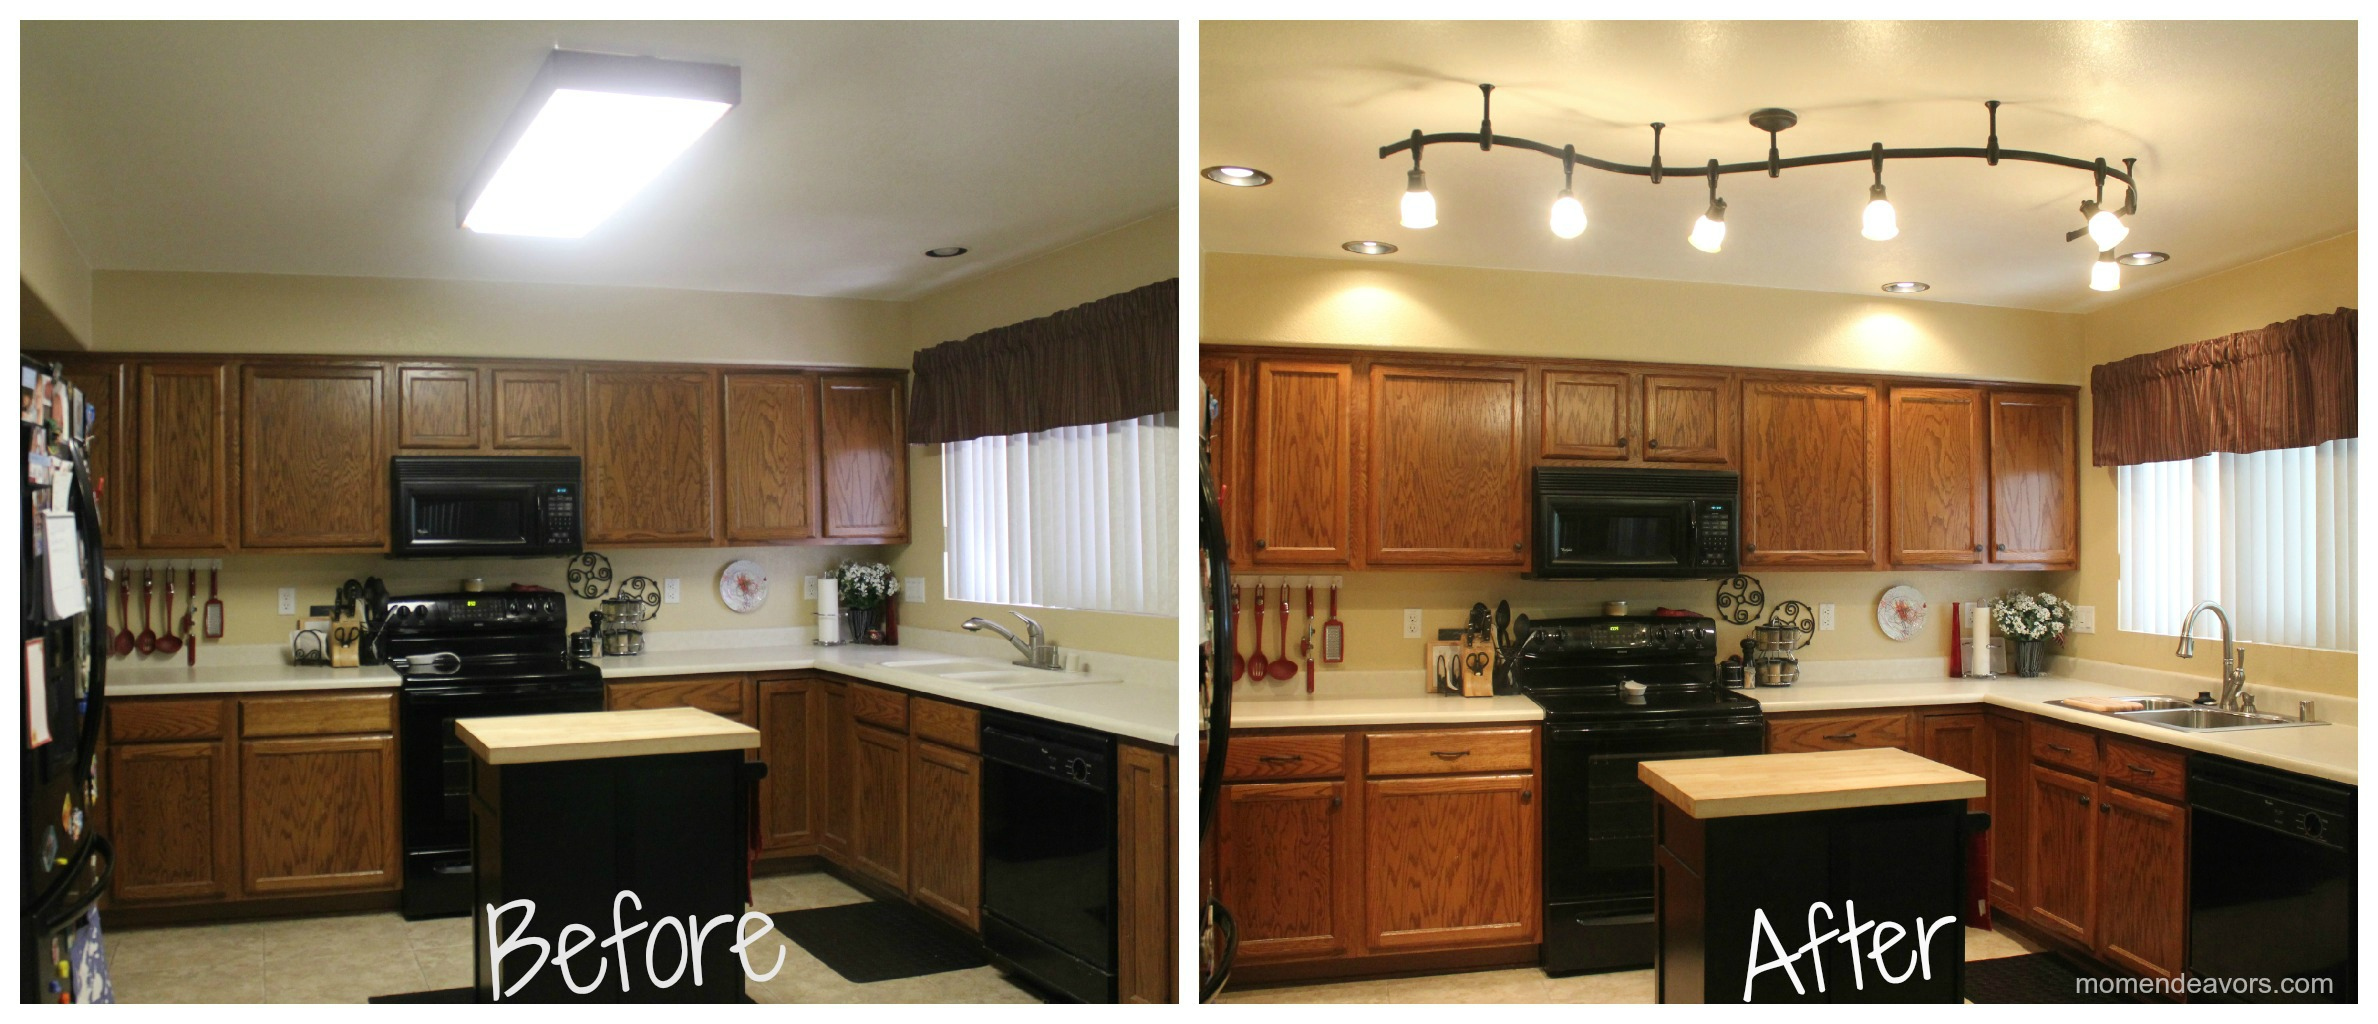 Mini kitchen remodel new lighting makes a world of for Kitchen remodel ideas before and after